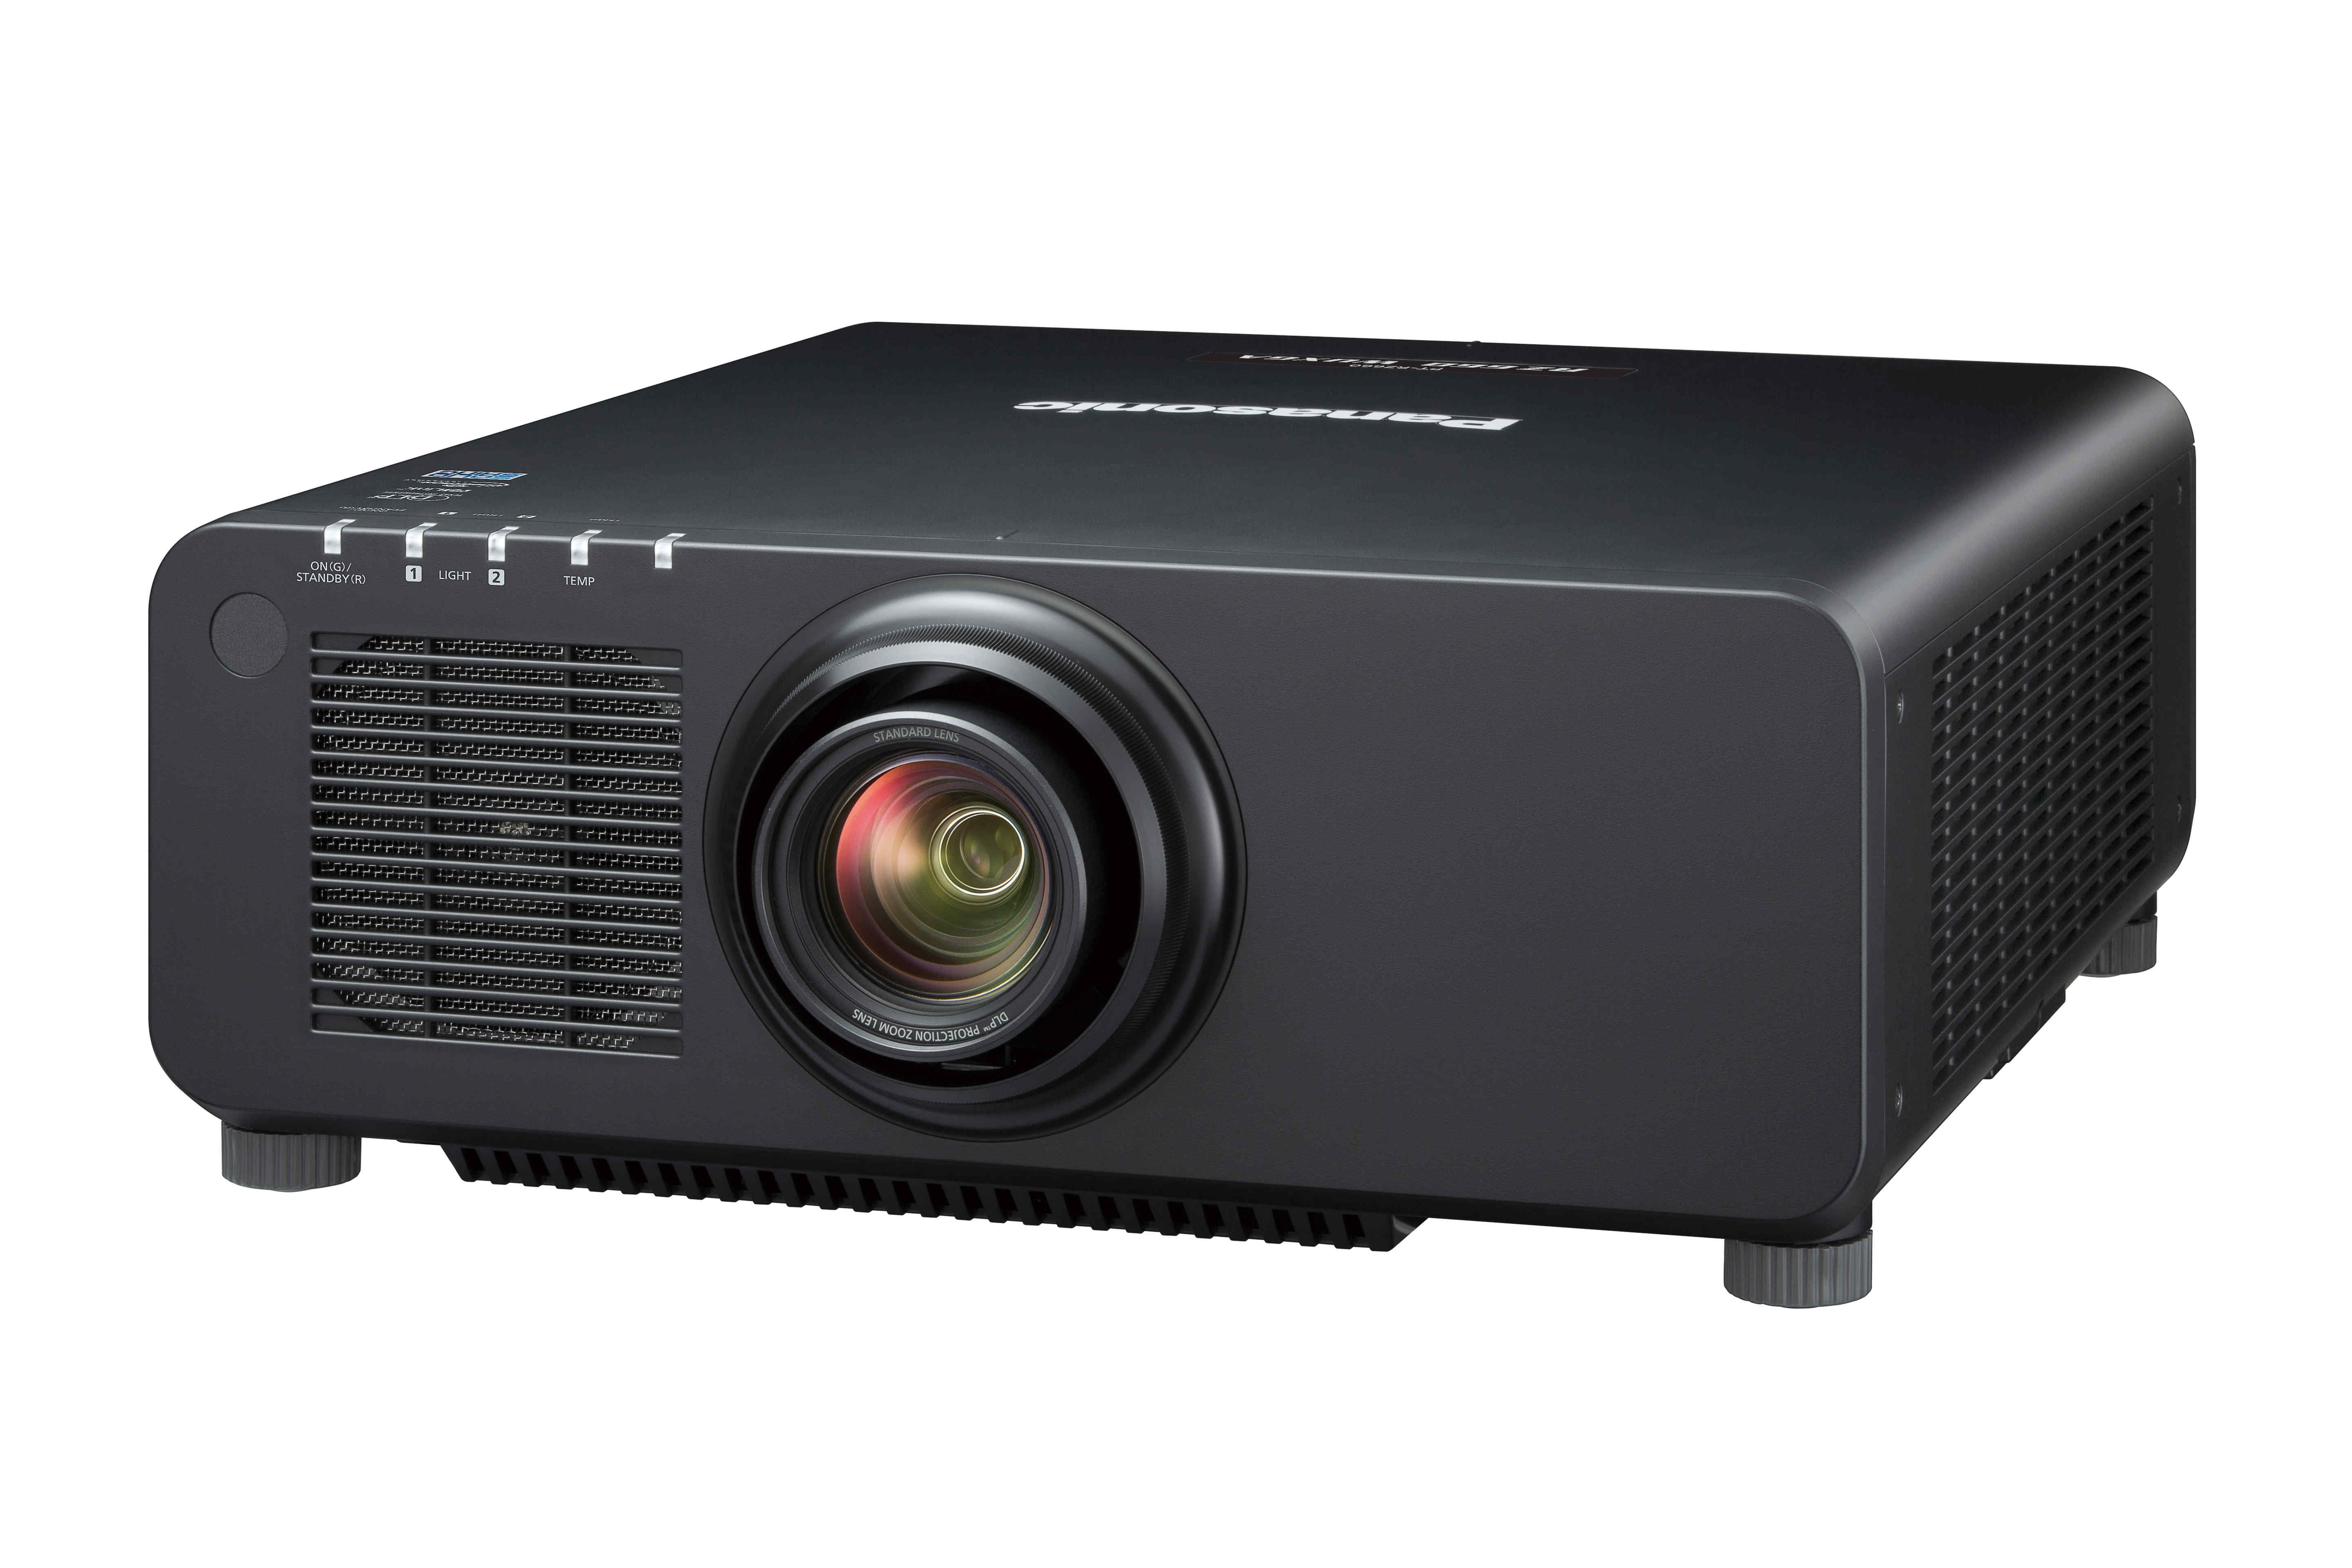 6200lm WUXGA Laser Projector in Black